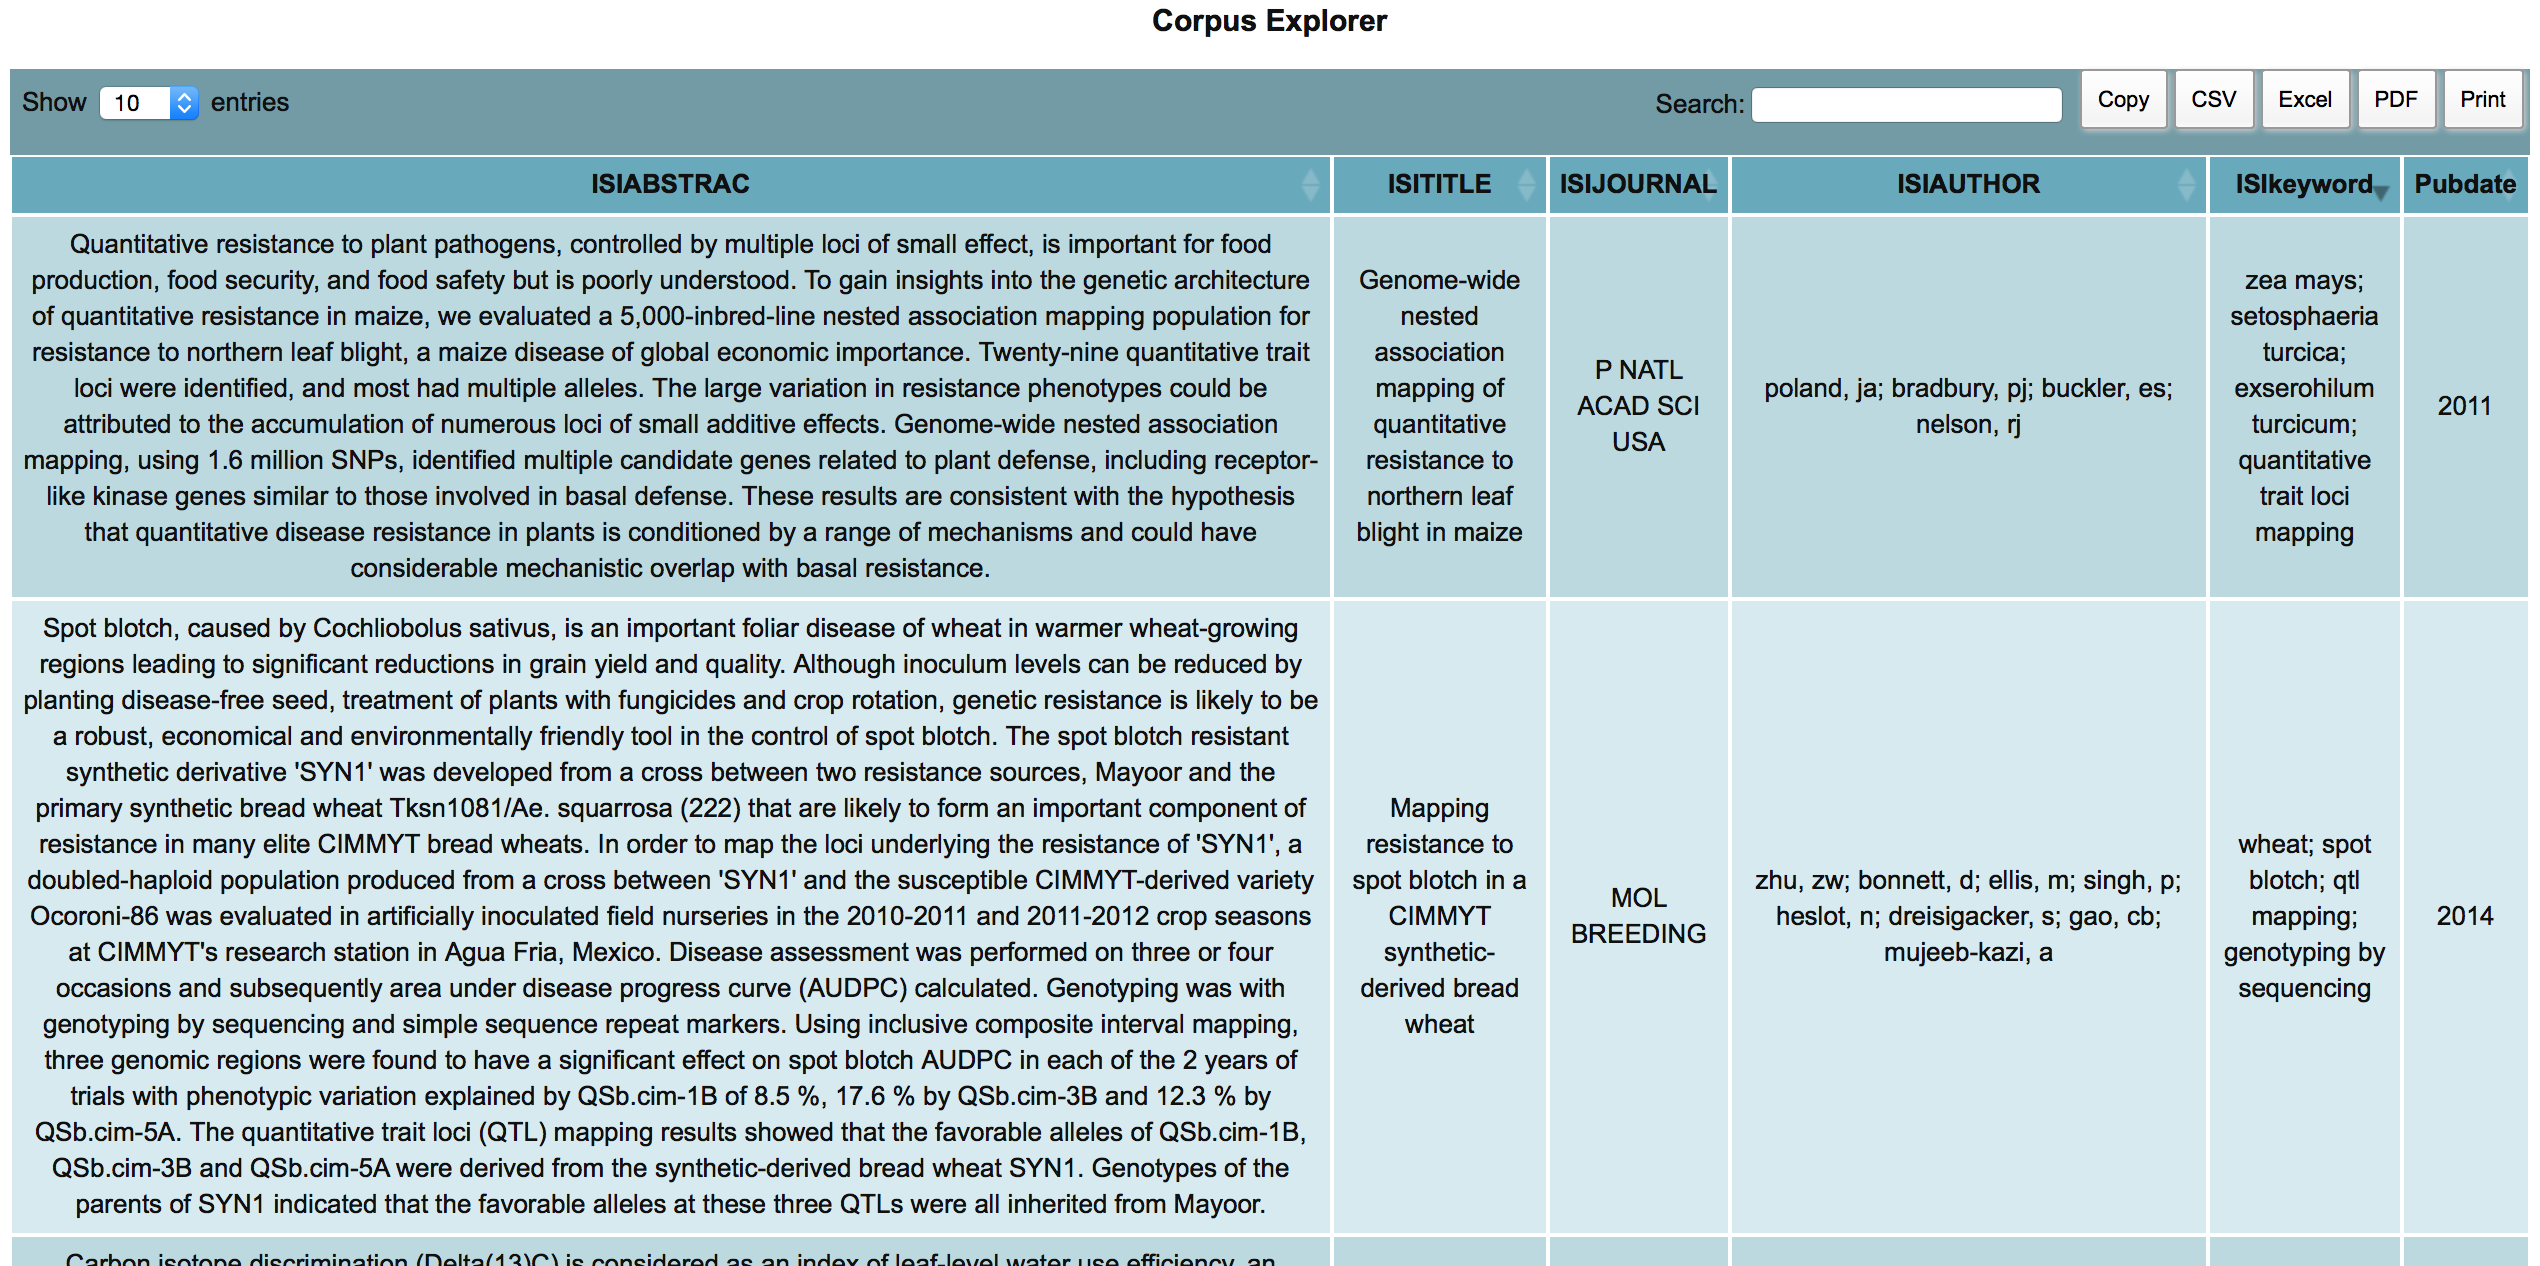 Corpus explorer view of a scientific publication dataset: Authors, Title, Year, Abstract and Keywords Fields were selected